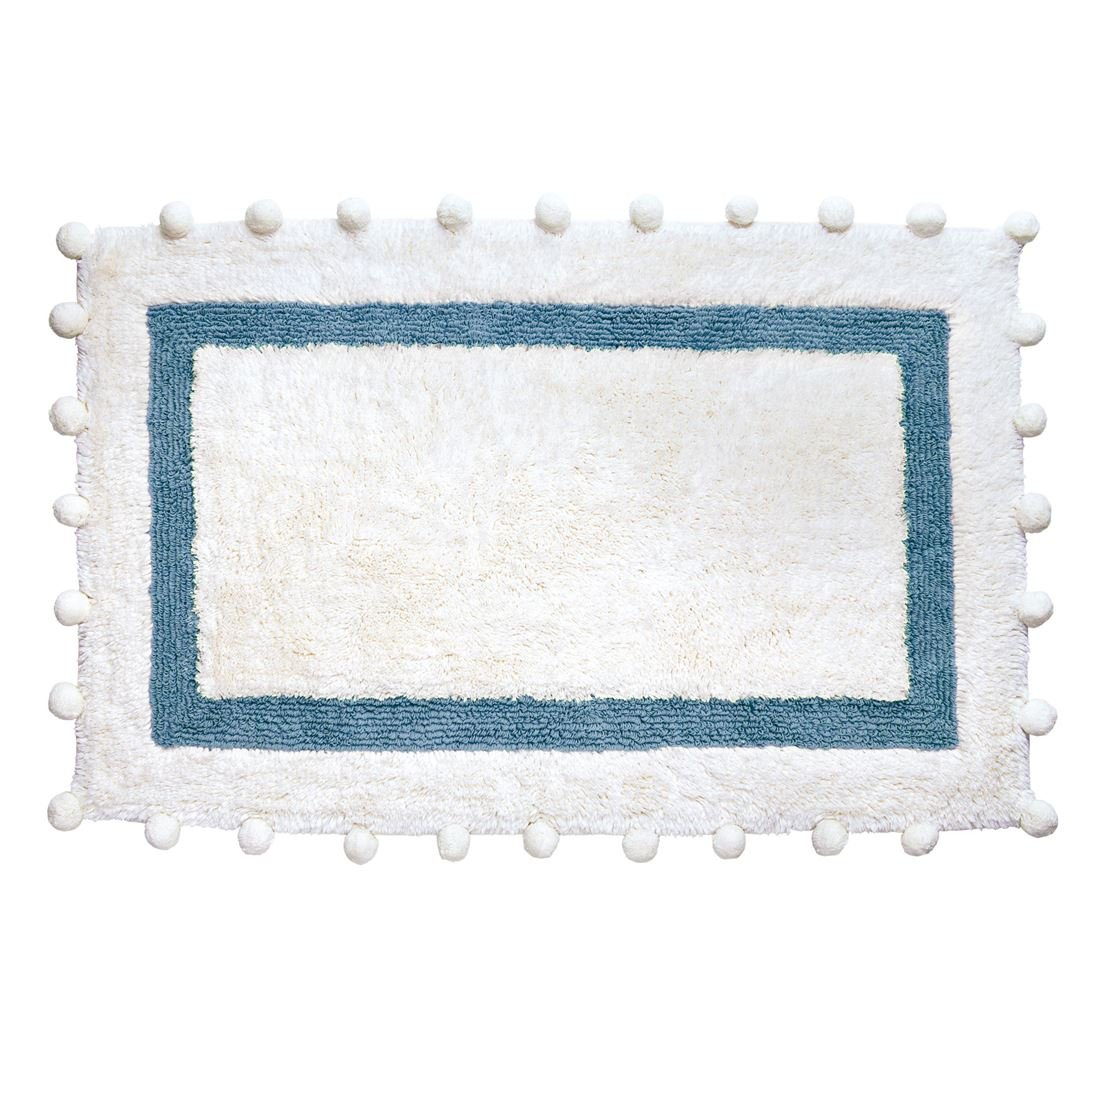 BrylaneHome Pompom Cotton Bath Rug (Light Blue,0)